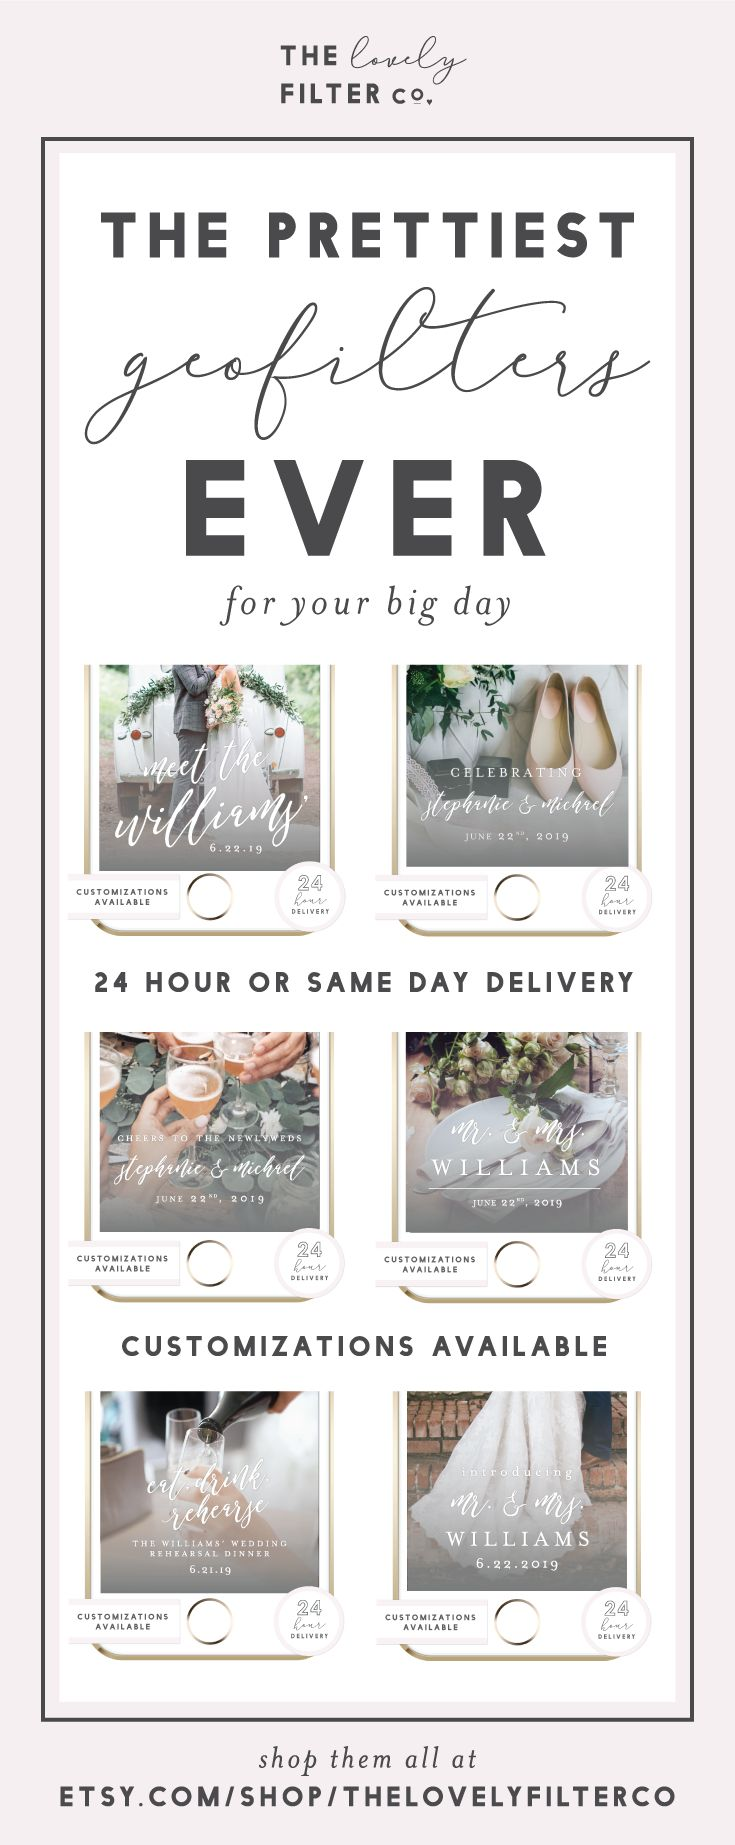 The prettiest Snapchat Geofilters customized and professionally designed for your weddings and celebrations! Click through to shop the full collection of filters for your wedding or celebration! ♥ The Lovely Filter Co.